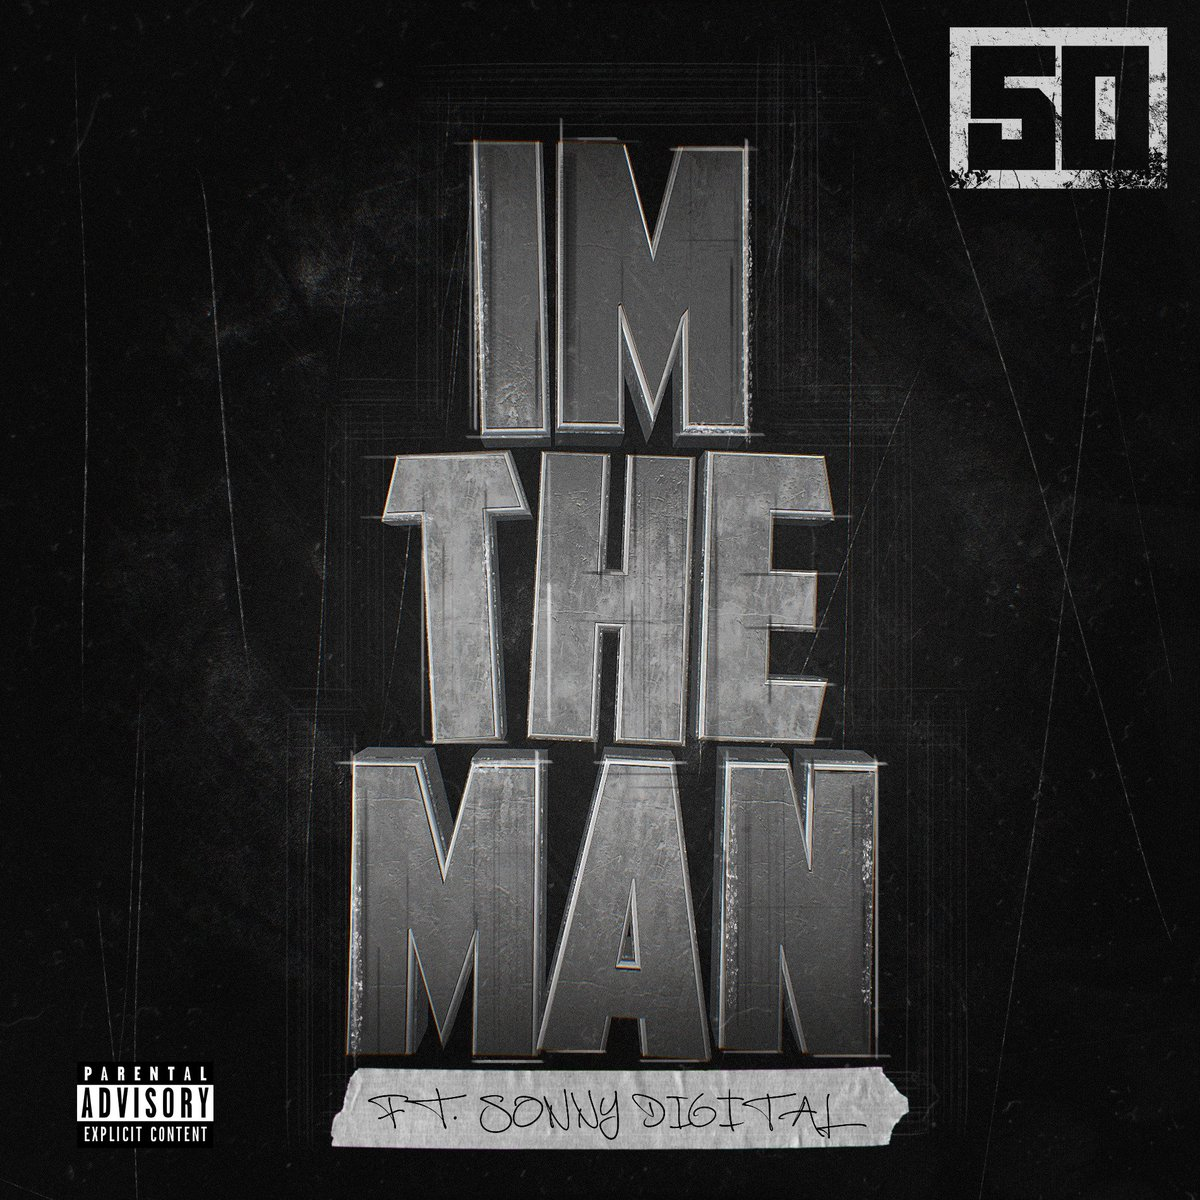 NOW PLAYING I'M THE MAN on @iTunes : https://t.co/0IOjqFAC1Q https://t.co/LFLZ0E8Bf1